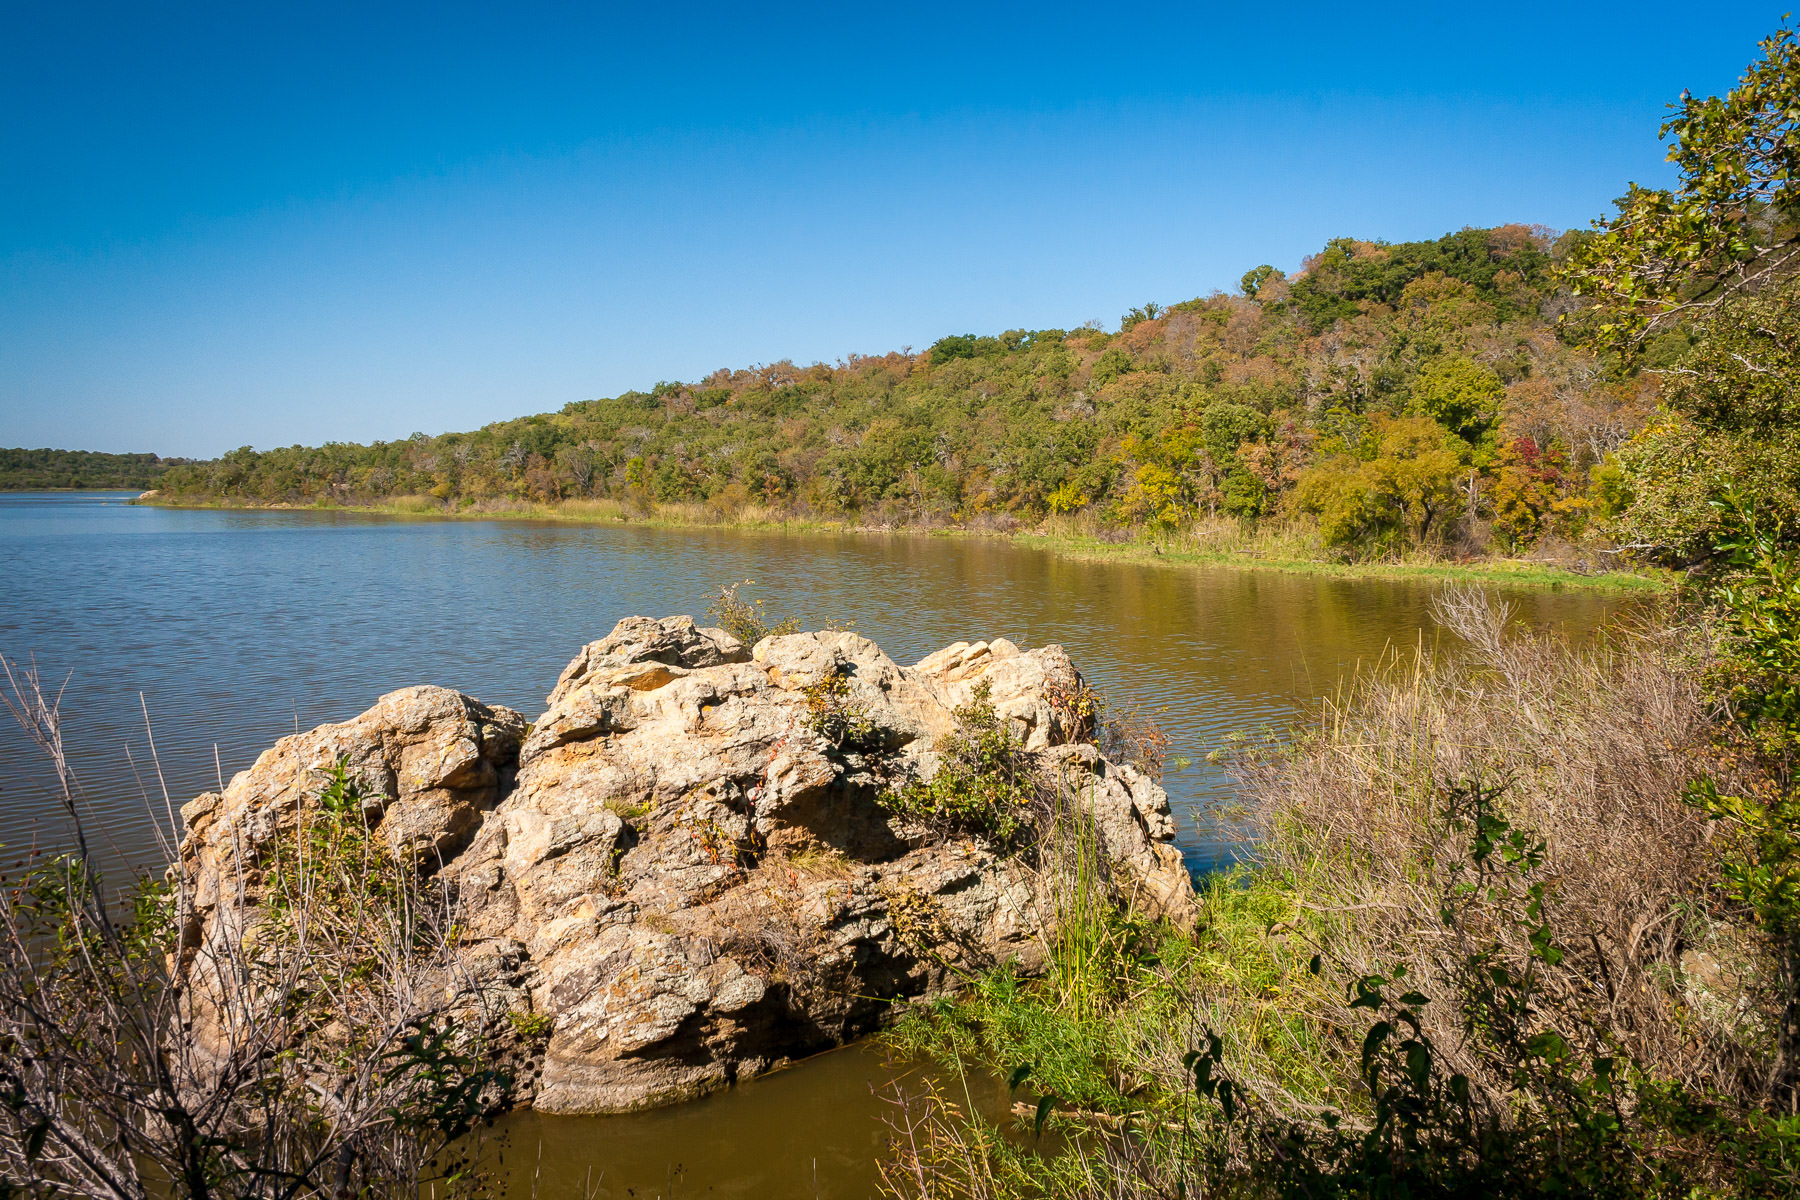 Lake Mineral Wells on a sunny Autumn day in North Central Texas.